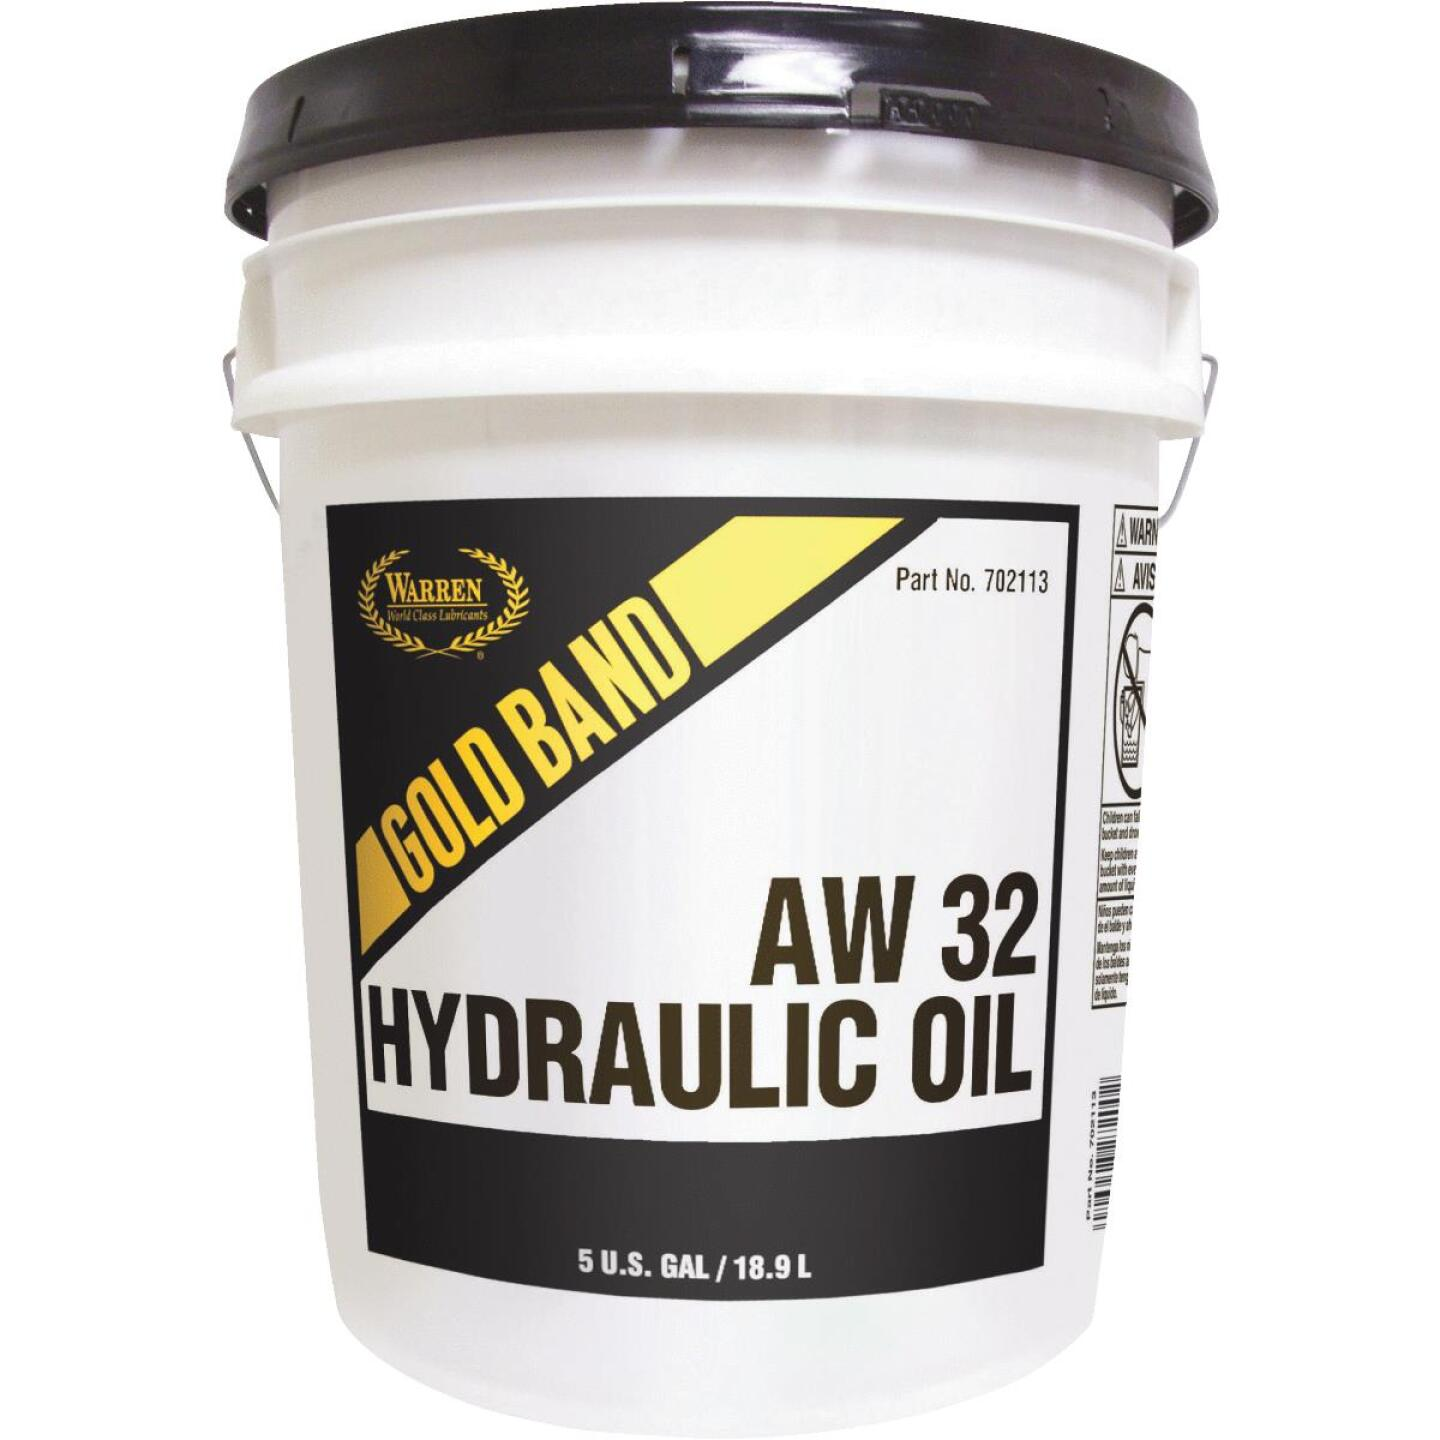 Gold Band 5 Gal. 10W Hydraulic Oil Image 1